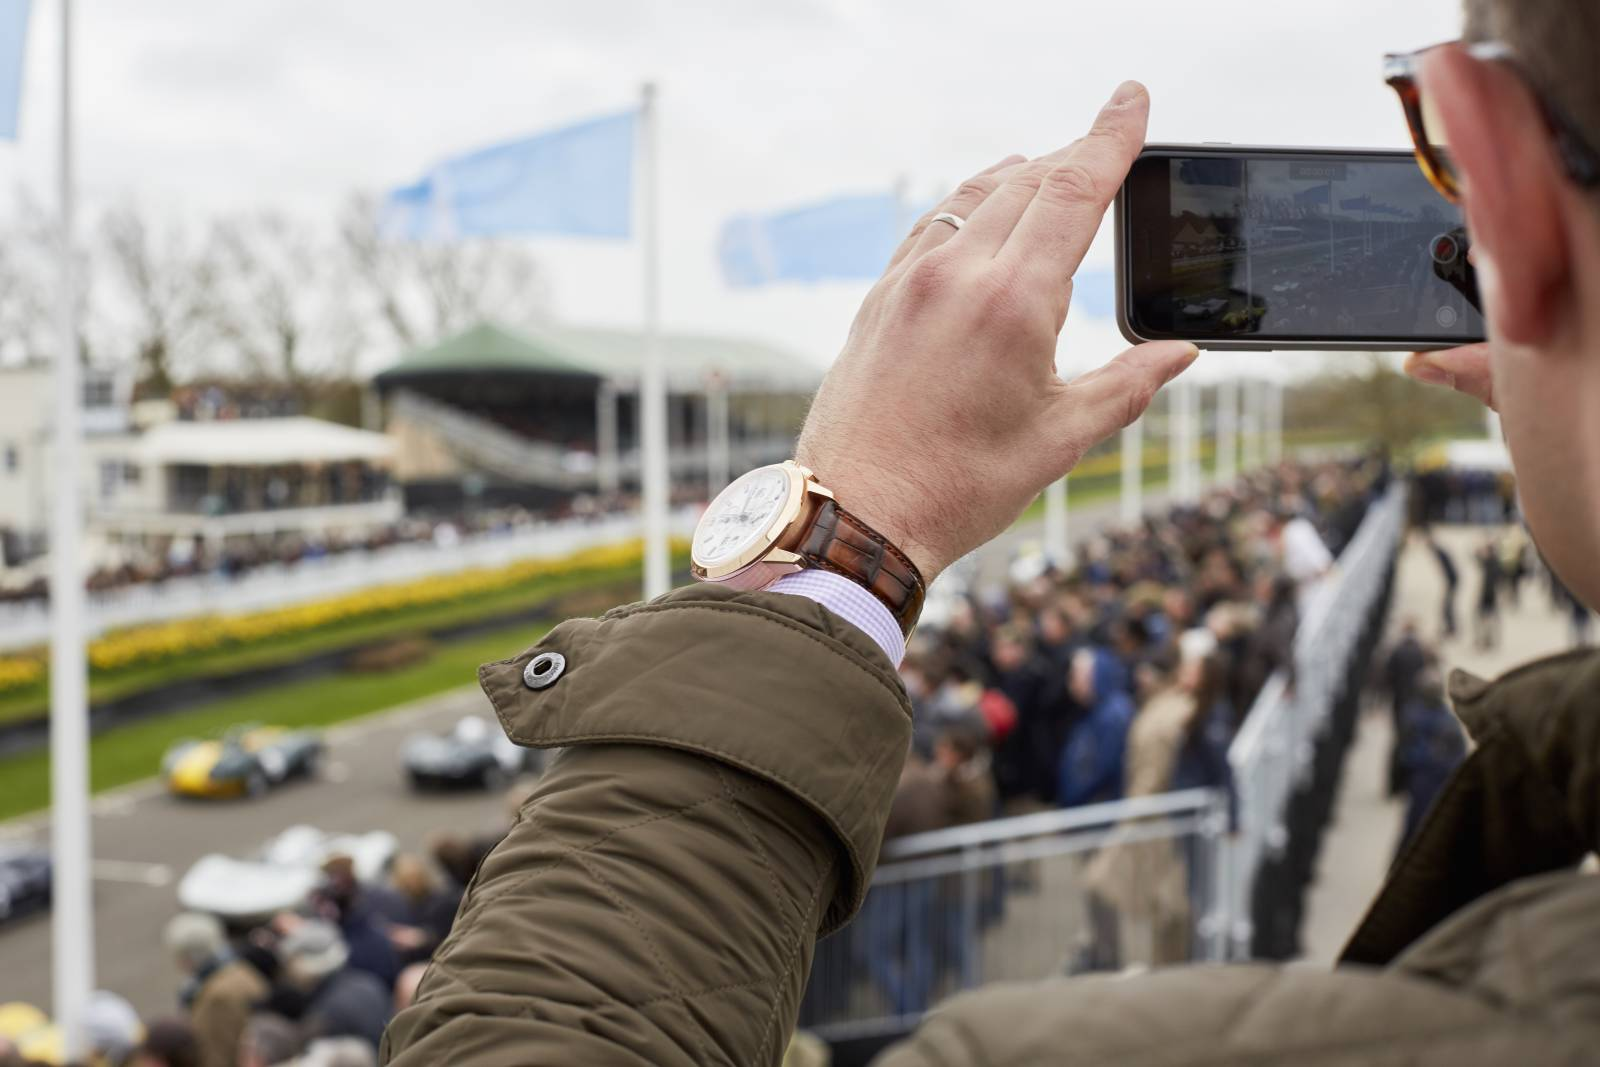 iwc-goodwoodmm-2017-pressselection-highres-30.jpg